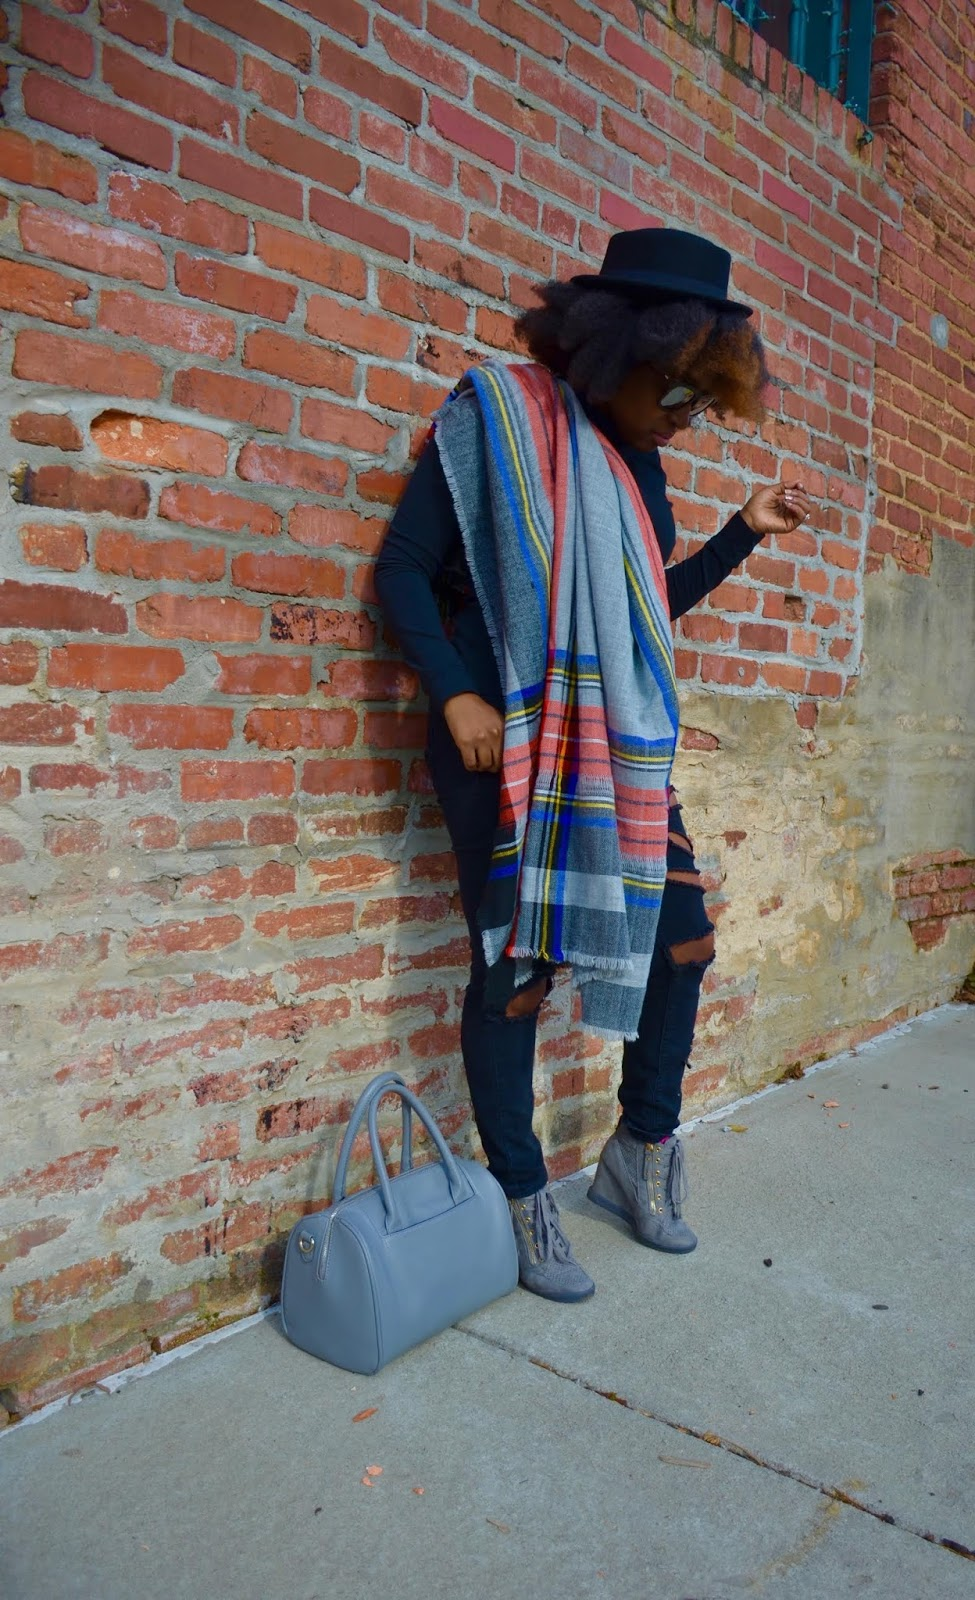 Atlanta style blogger, style blogger, Atlanta blogger, diy jeans, distressed jeans, turtleneck, grey handbag, forever21, grey sneakers, blanket scarf, fedora hat, street style, street fashion, Atlanta stylist